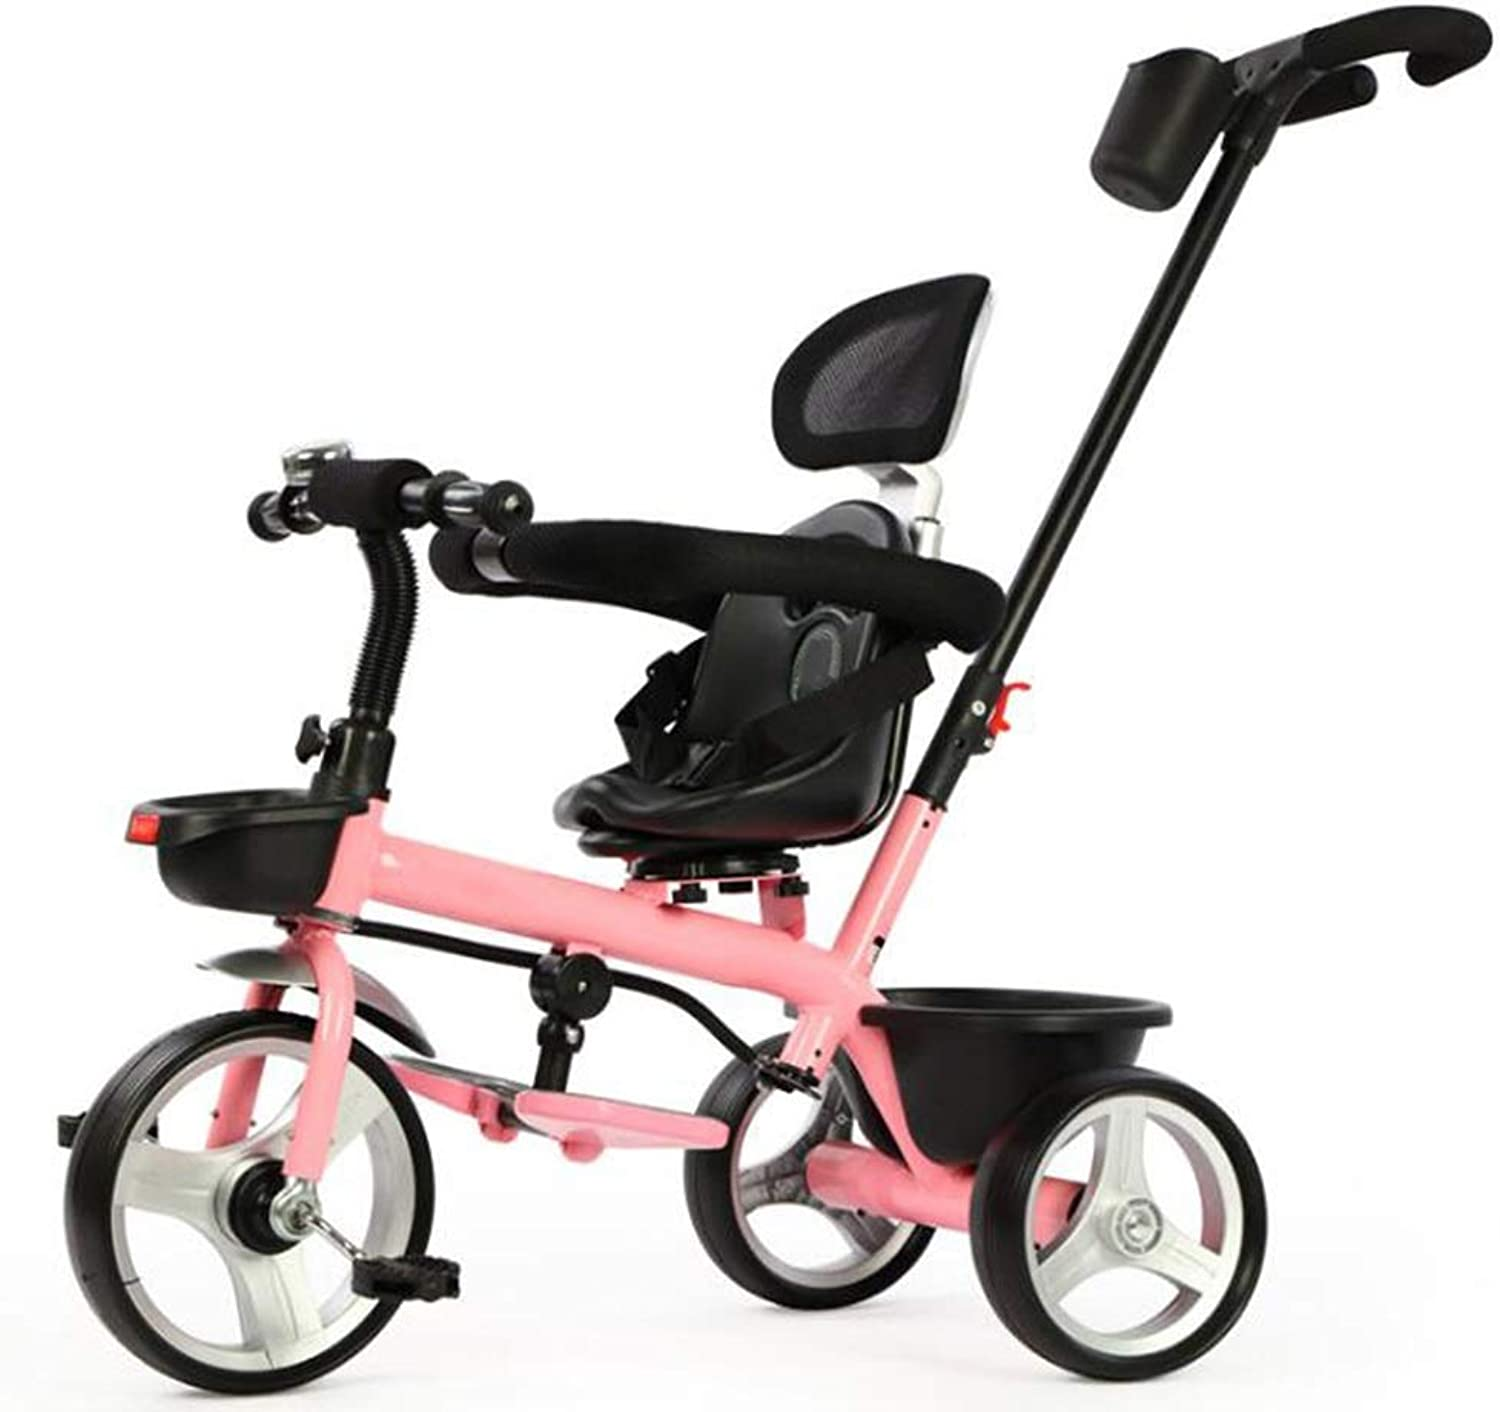 YUMEIGE Kids' Tricycles Kids Tricycle Foldable Pedal 1-6 Years Old Birthday Gift Kids Toddler Trike Load Weight 30 kg Available